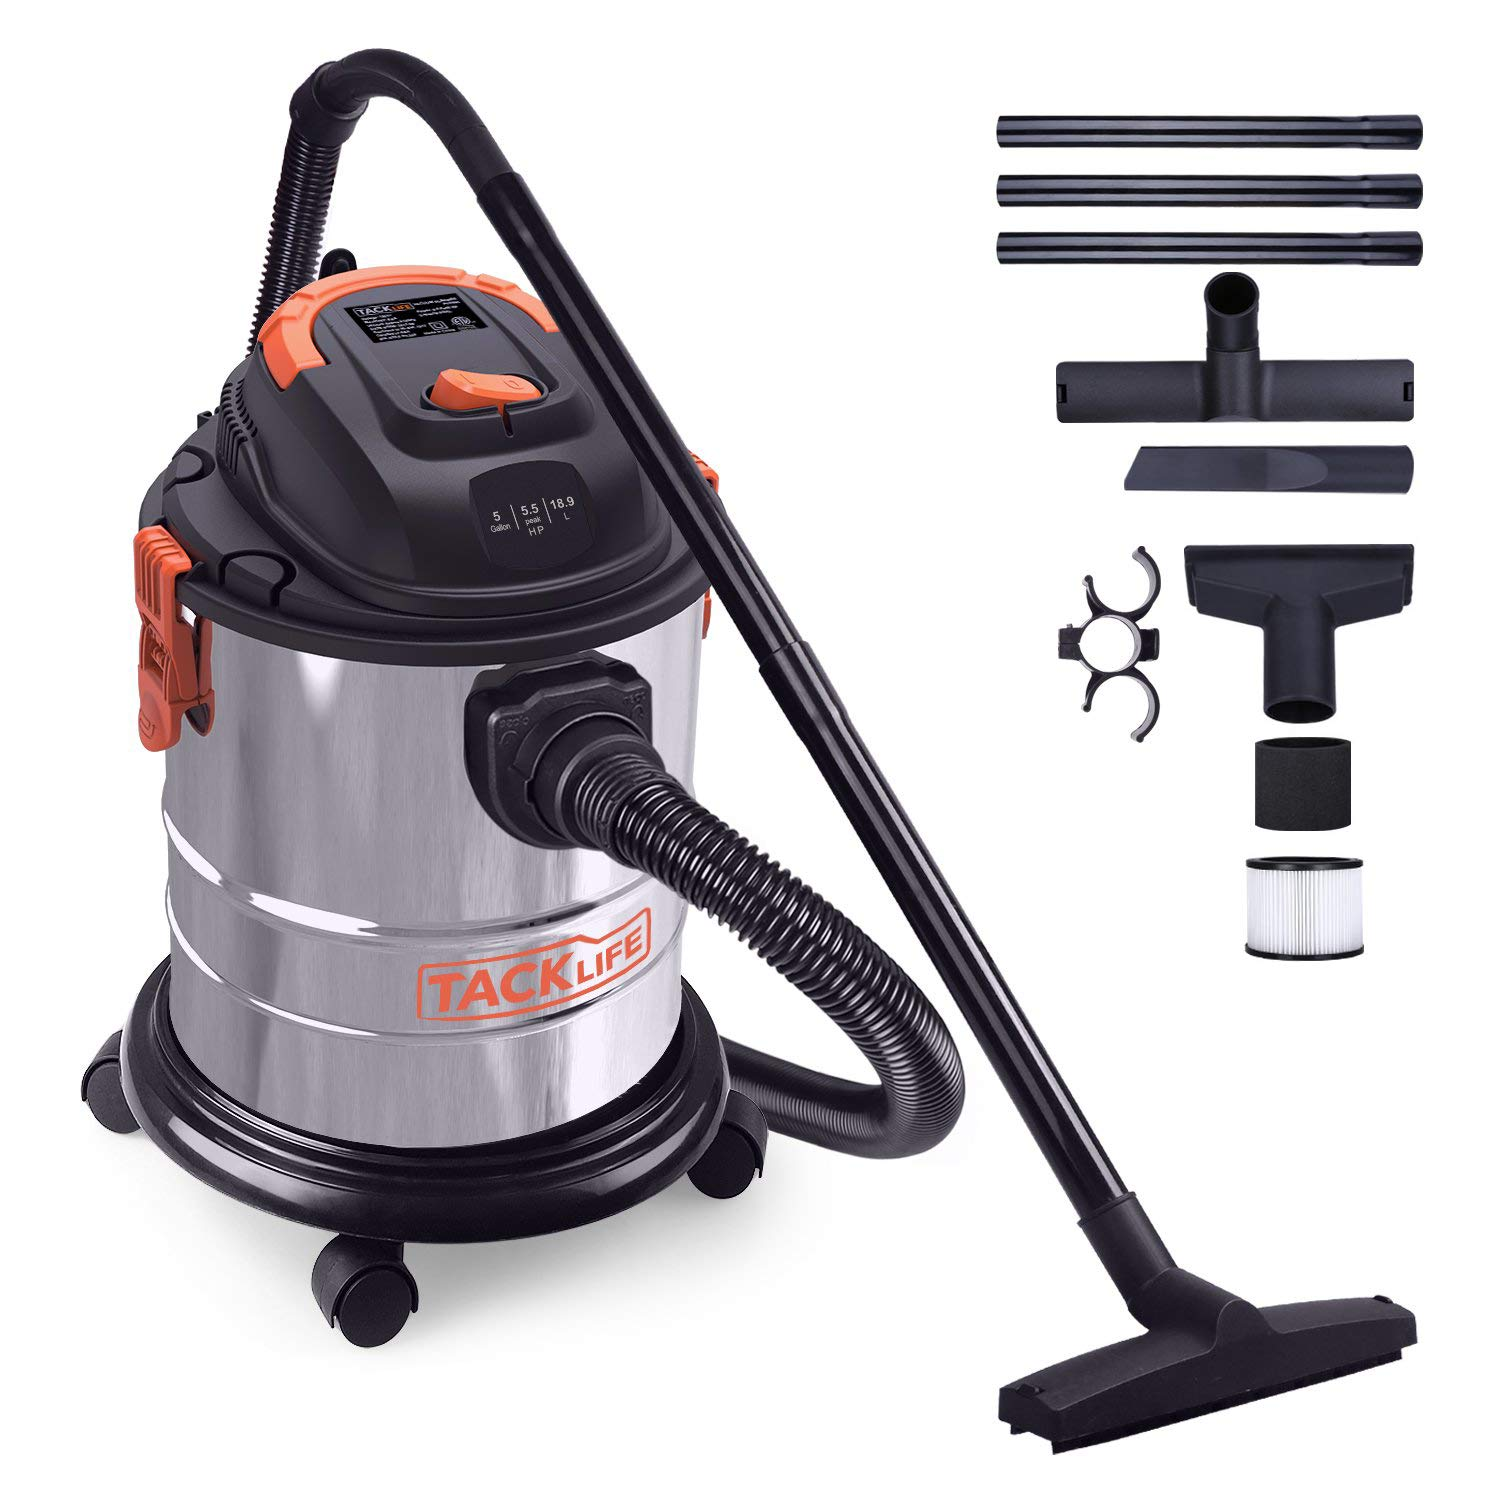 Wet Dry Vacuum, TACKLIFE 5 Gallon 5.5 Peak HP Shop Vacuum, 1000W Pure Copper Motor, Stainless Steel Wet/Dry/Blow 3 in 1 Multifunction, 4-Layer Filtration System,Portable Shop Vac with Attachments by TACKLIFE